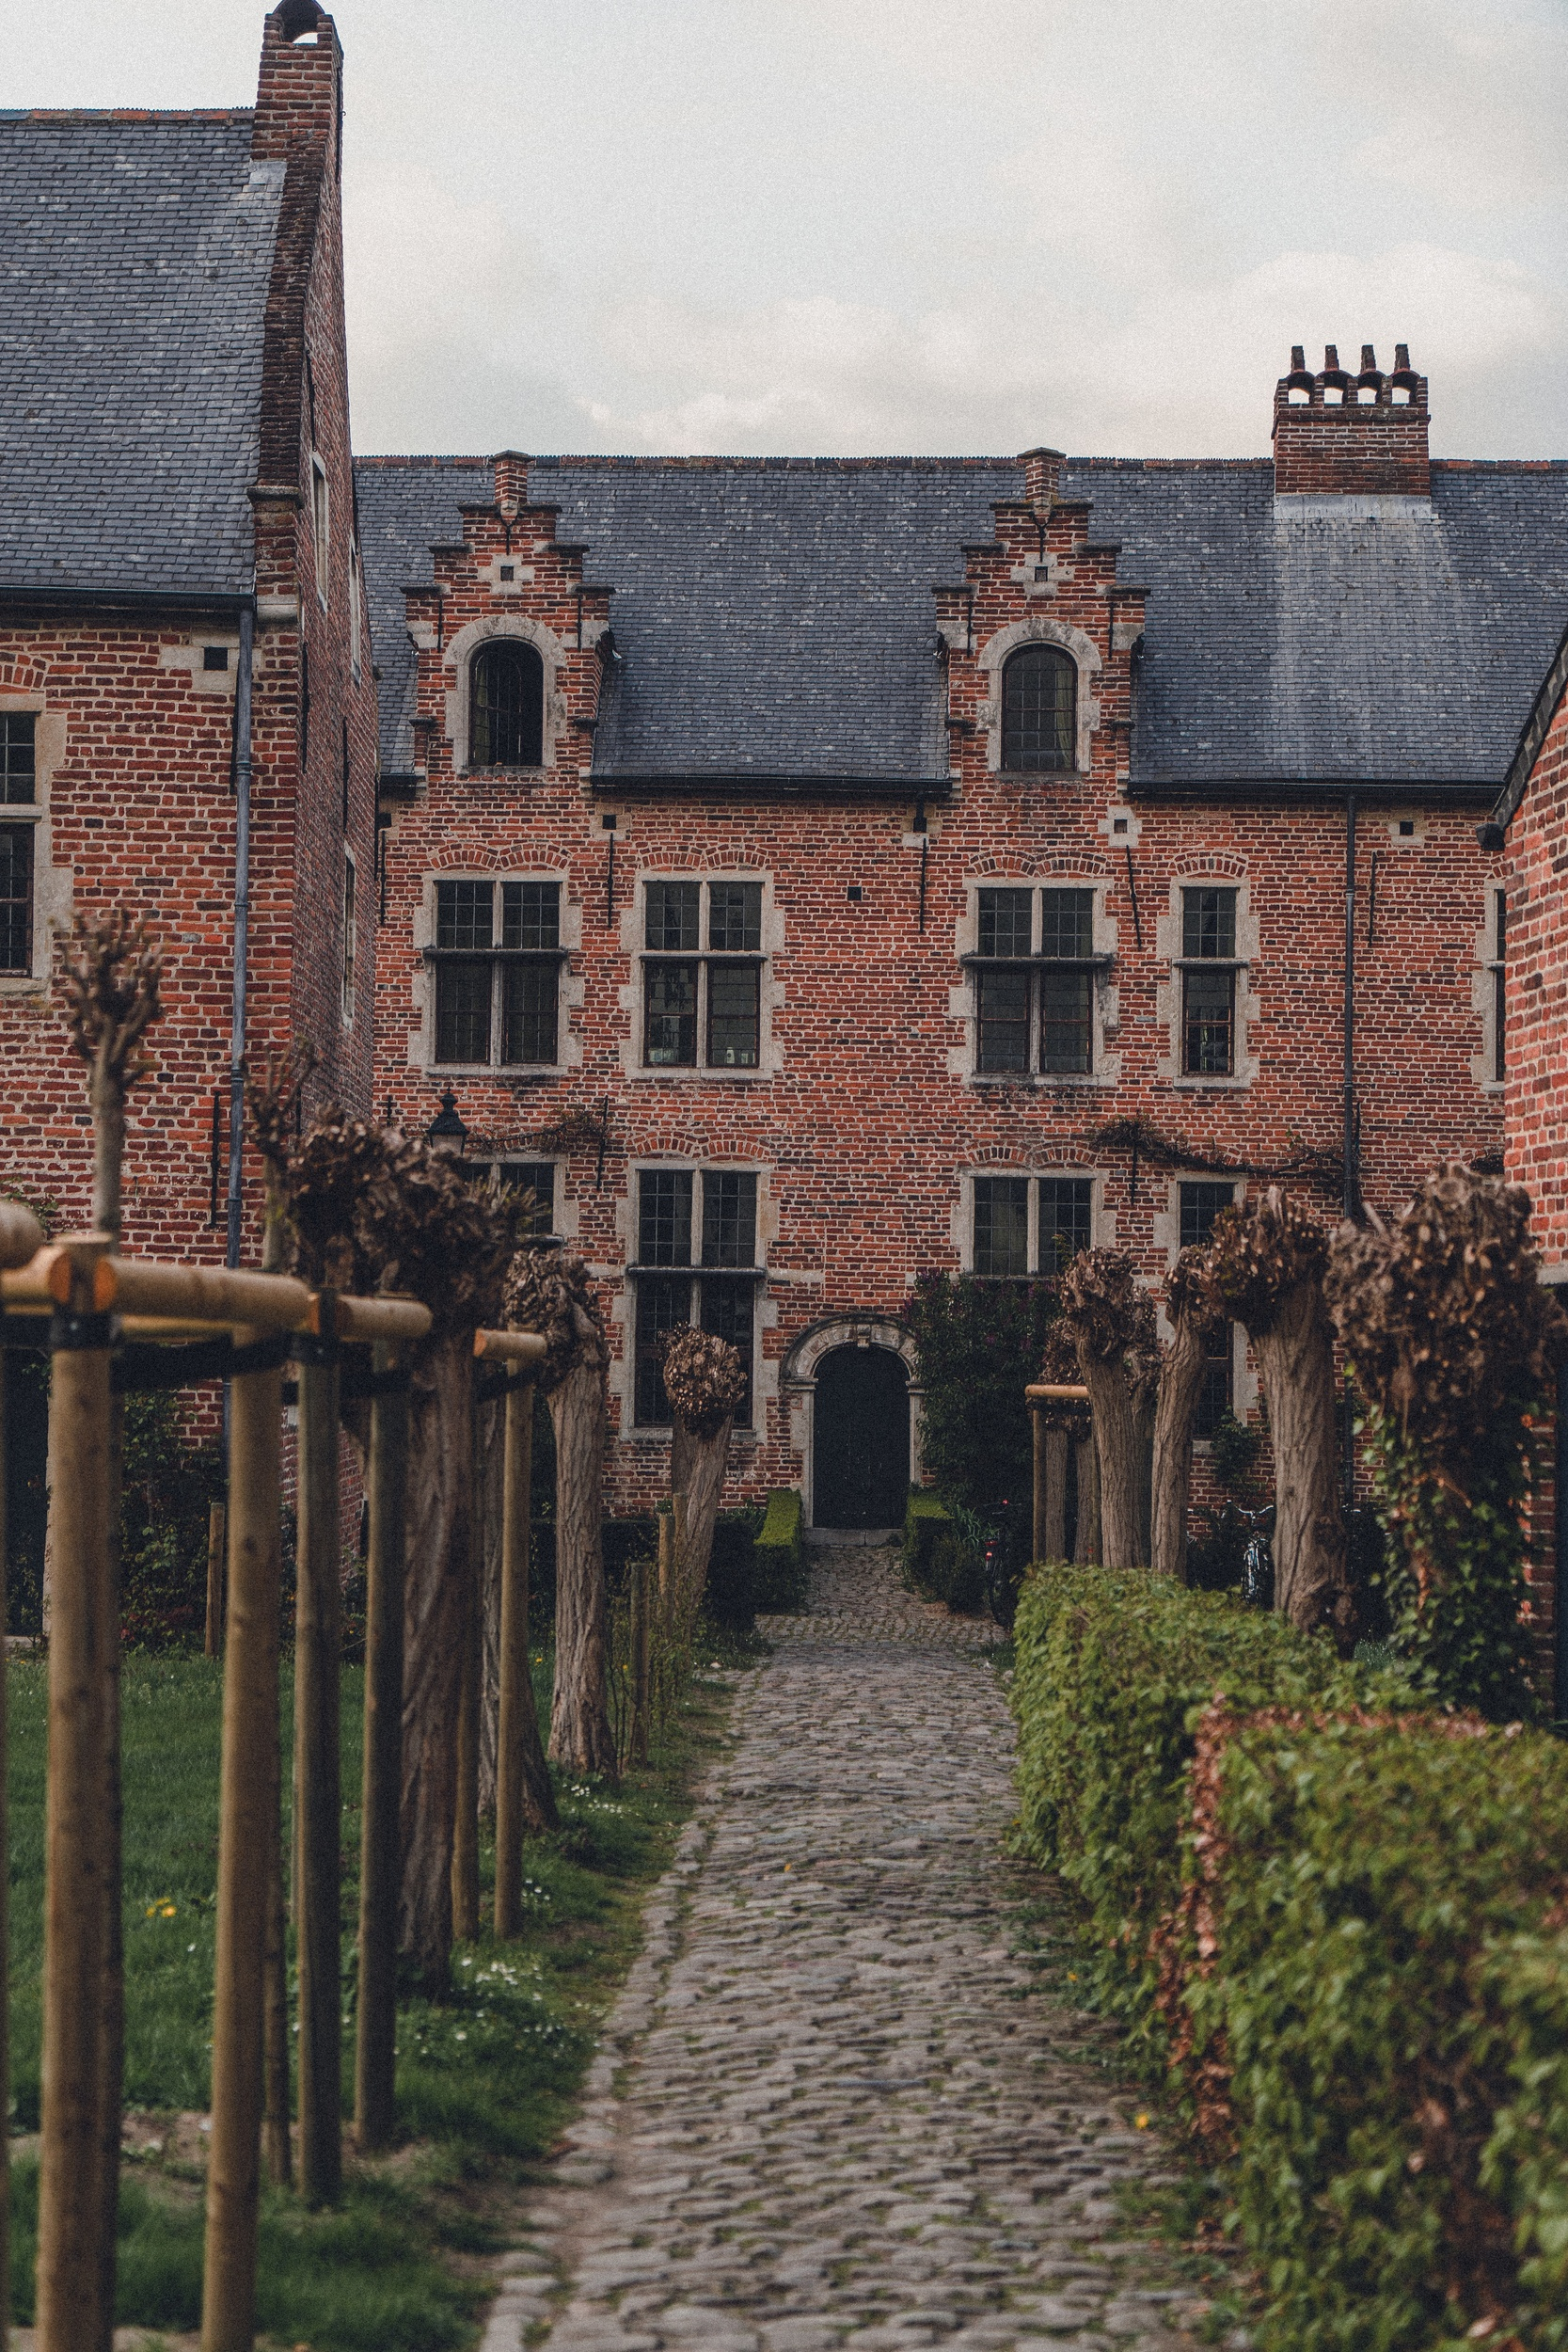 Beguinages of Leuven: Groot & Klein Begijnhof Leuven, Belgium (free beautiful buildings and beguinages in Europe))